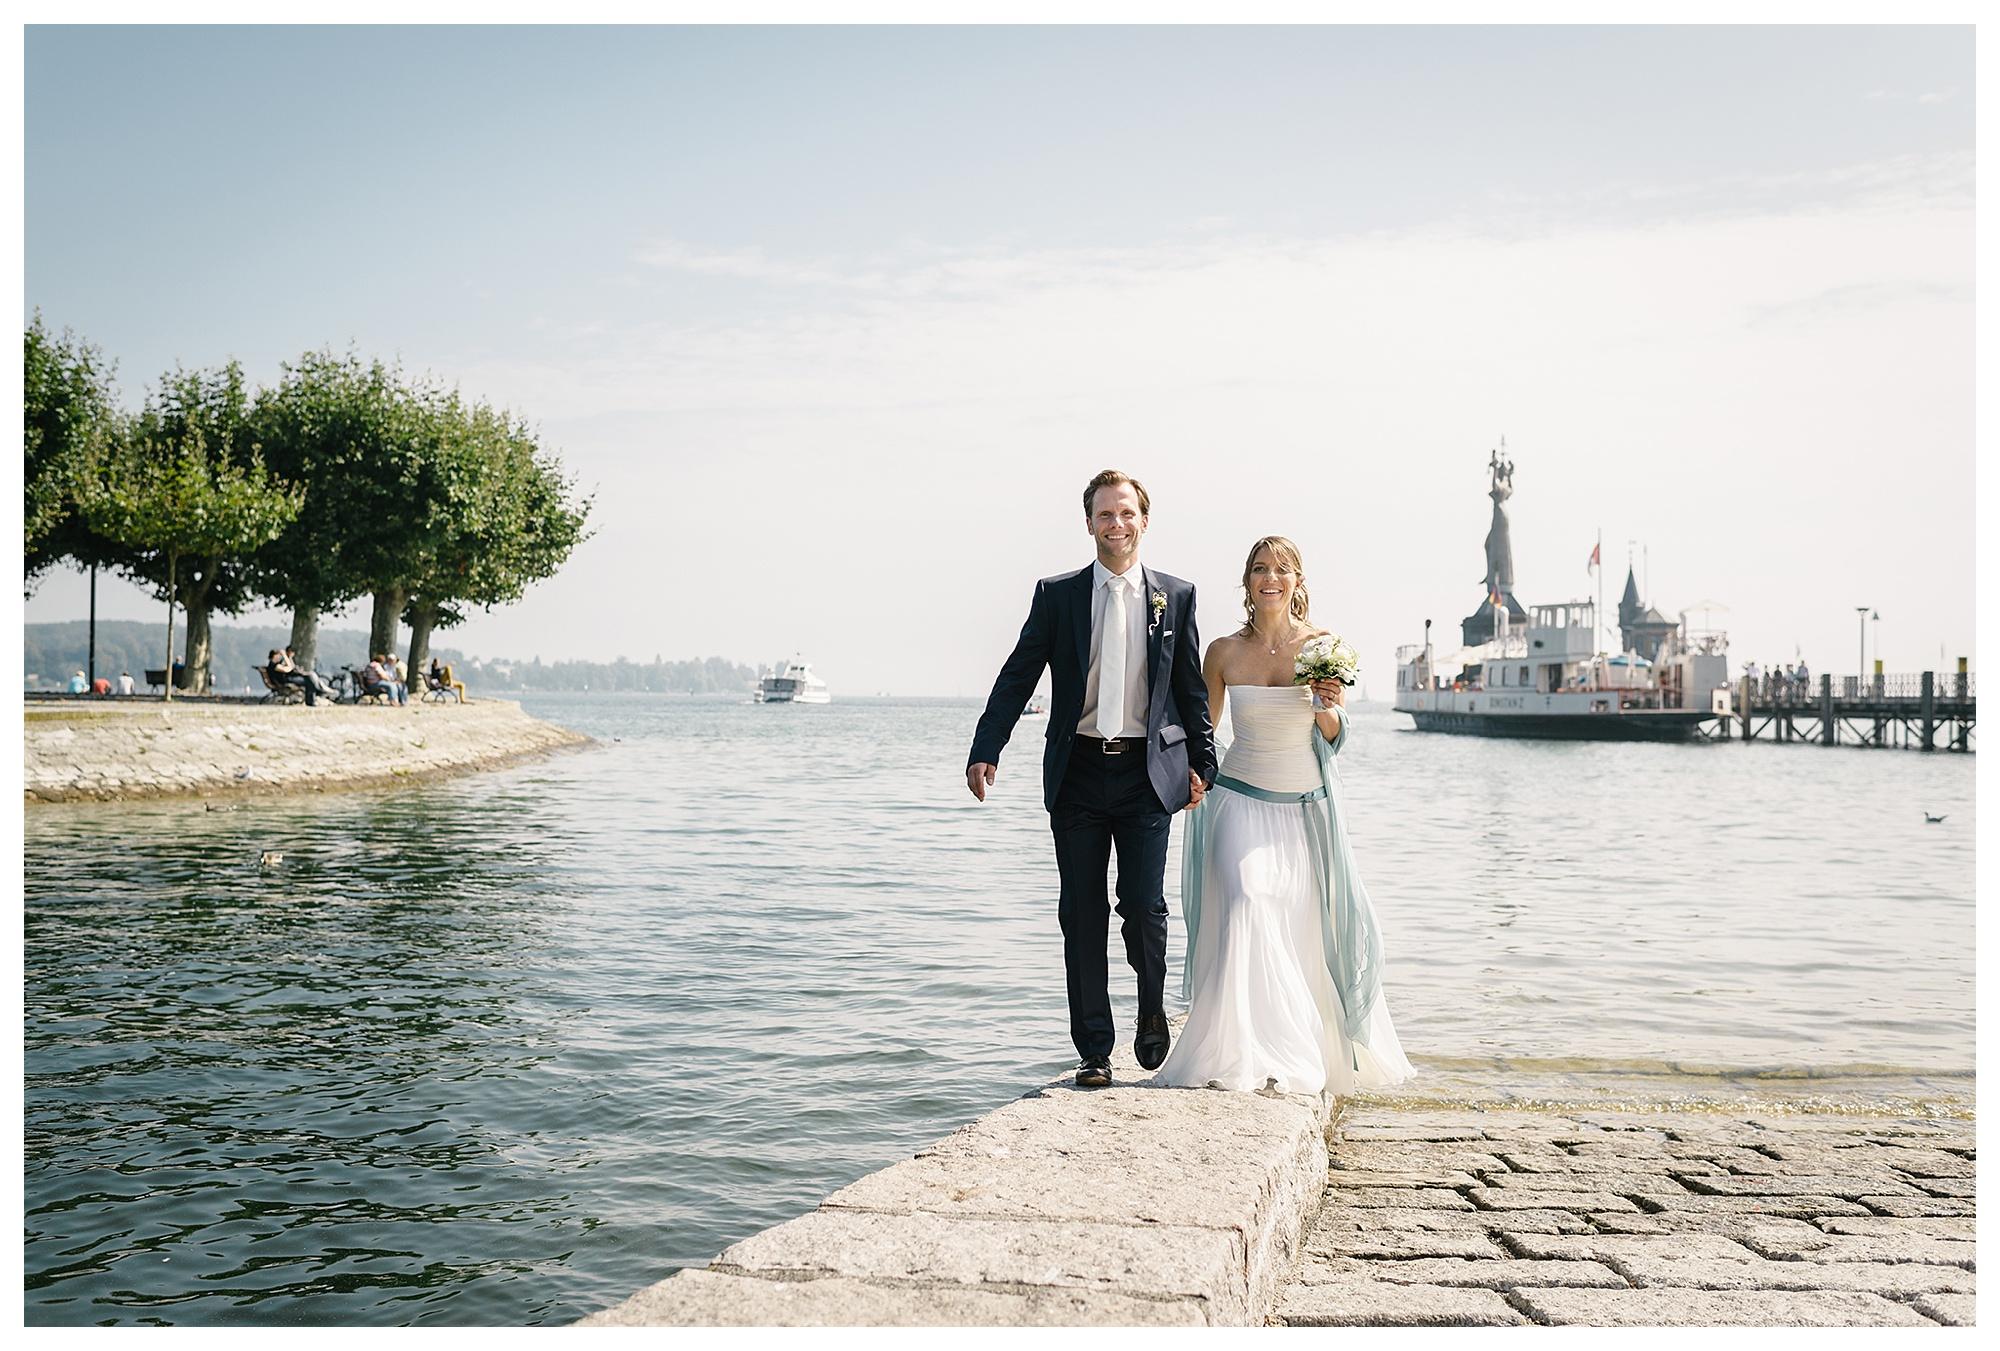 Fotograf Konstanz - Hochzeitsreportage Konstanz Raphael Nicole Elmar Feuerbacher Photography Hochzeit Portrait 25 - Wedding in Constance at Lake of Constance  - 60 -